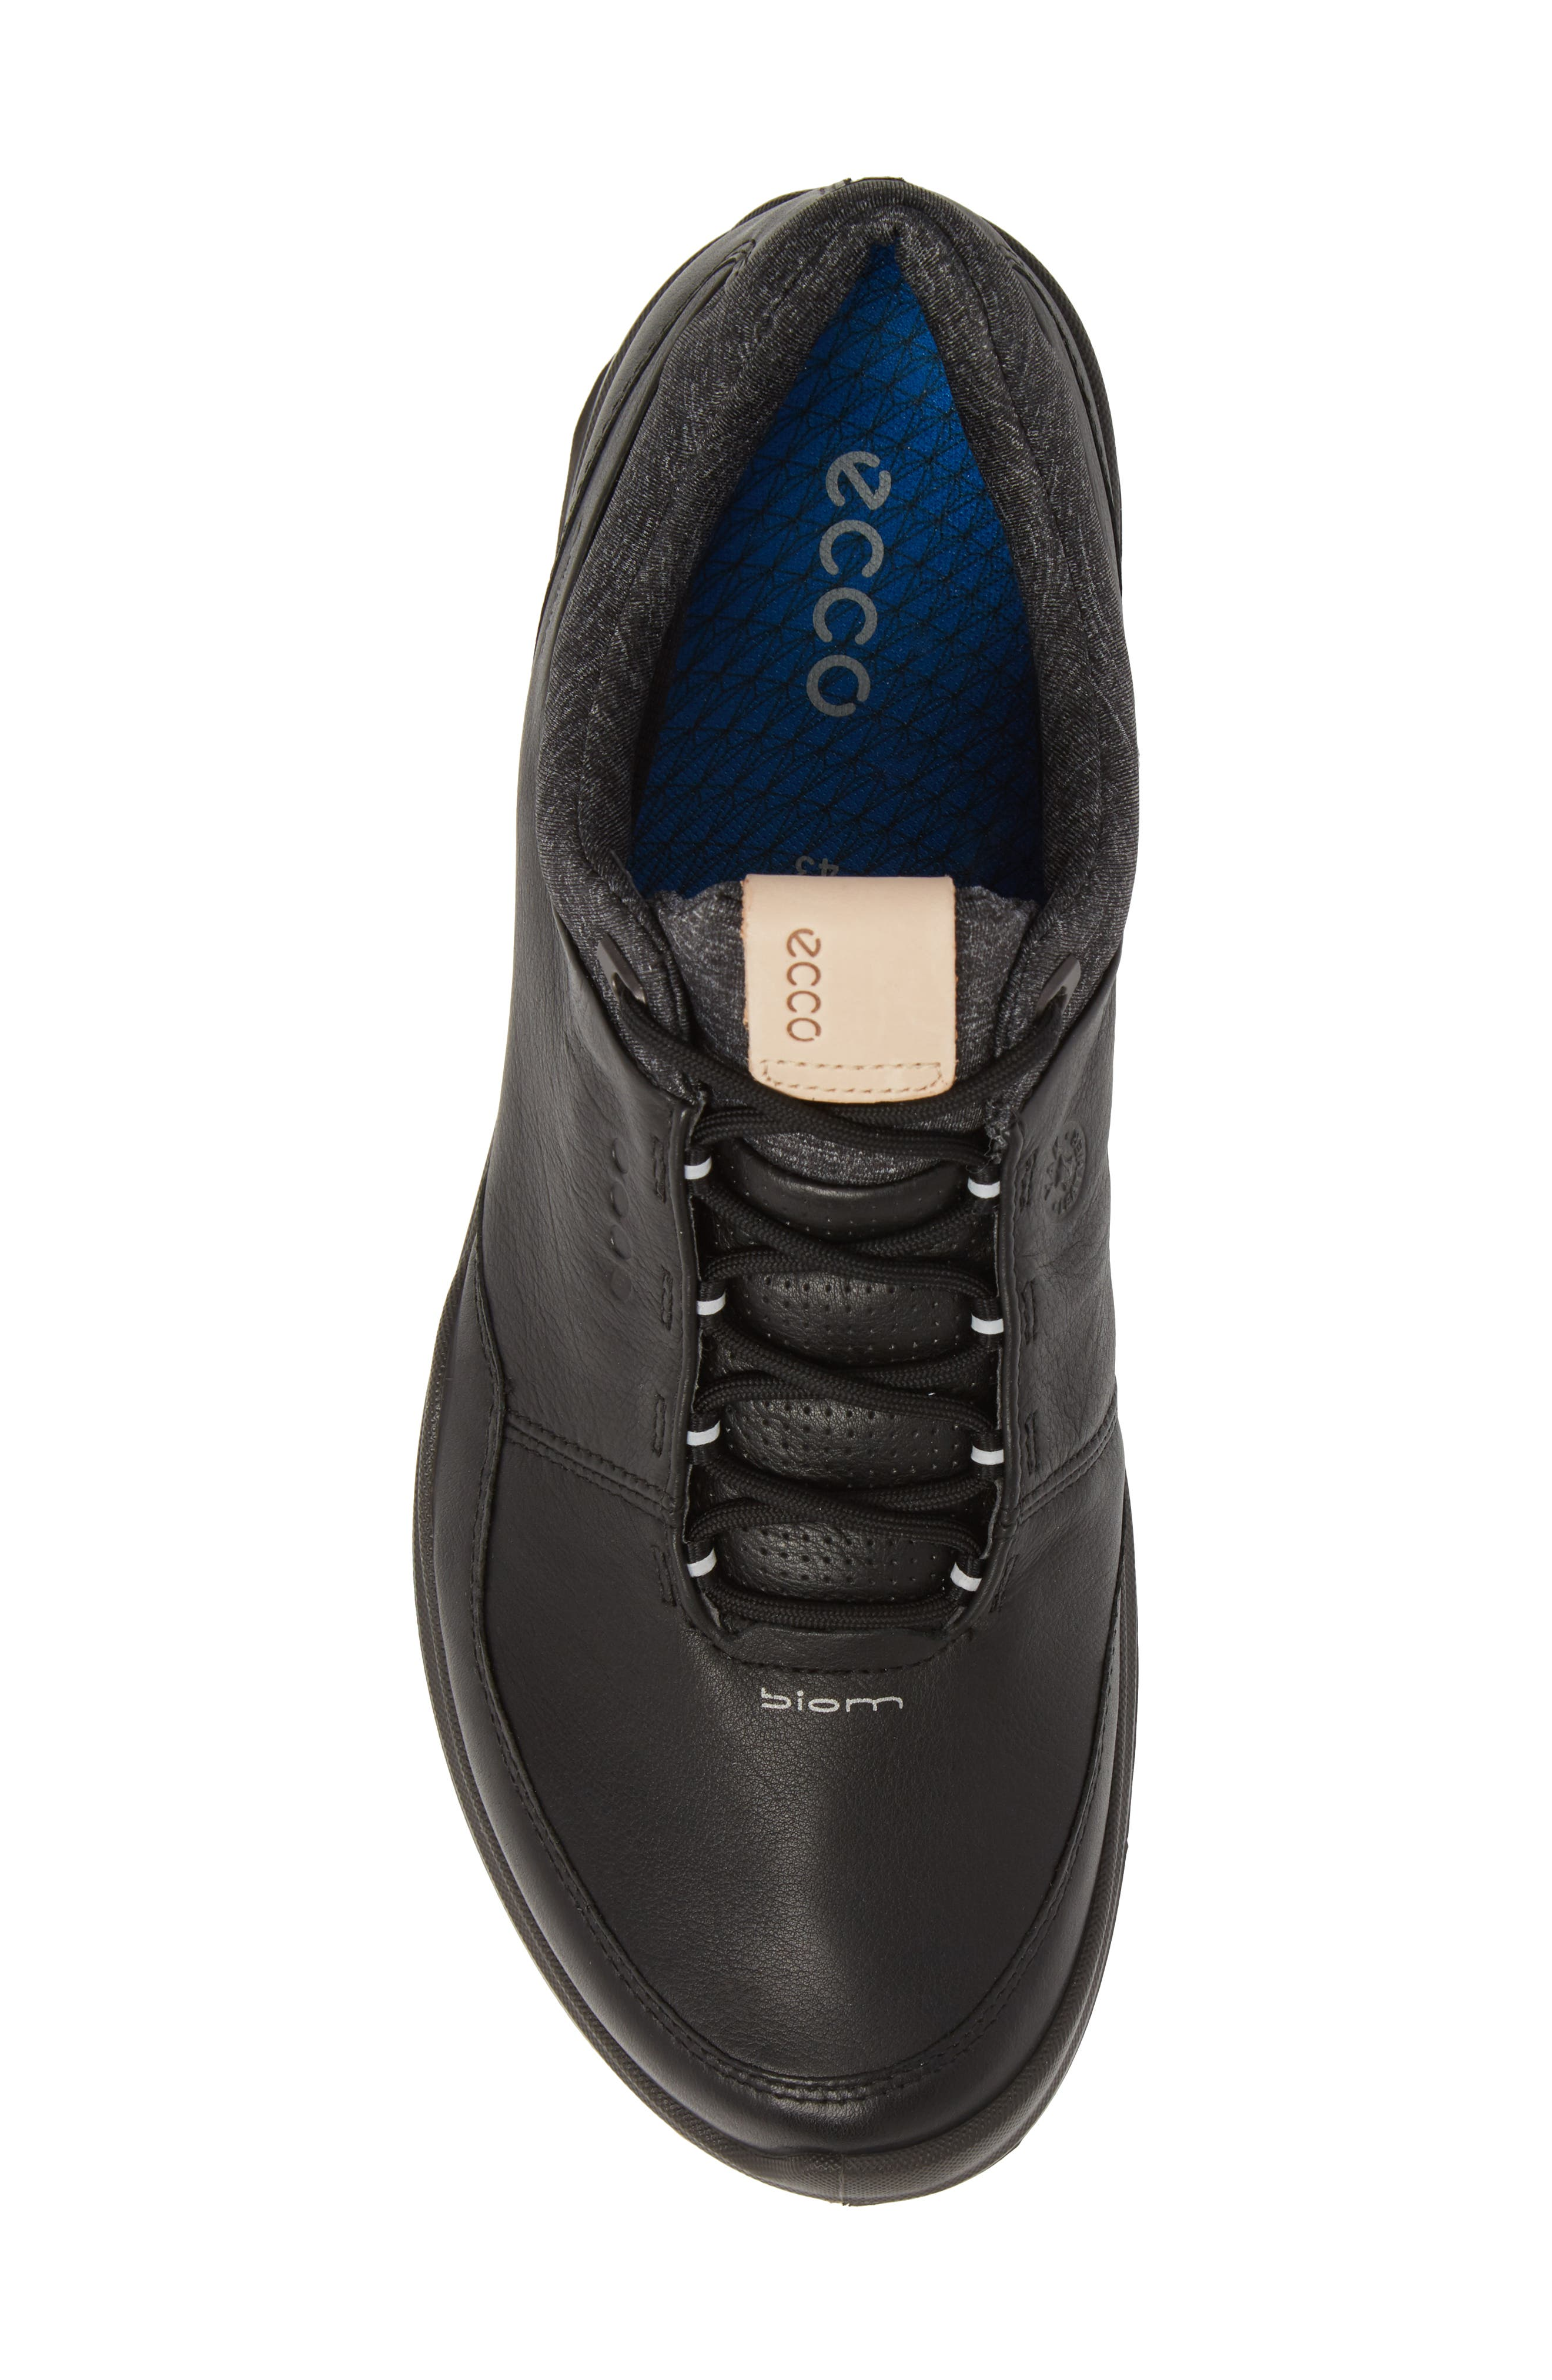 BIOM Hybrid 3 Gore-Tex<sup>®</sup> Golf Shoe,                             Alternate thumbnail 5, color,                             BLACK/ BERMUDA BLUE LEATHER